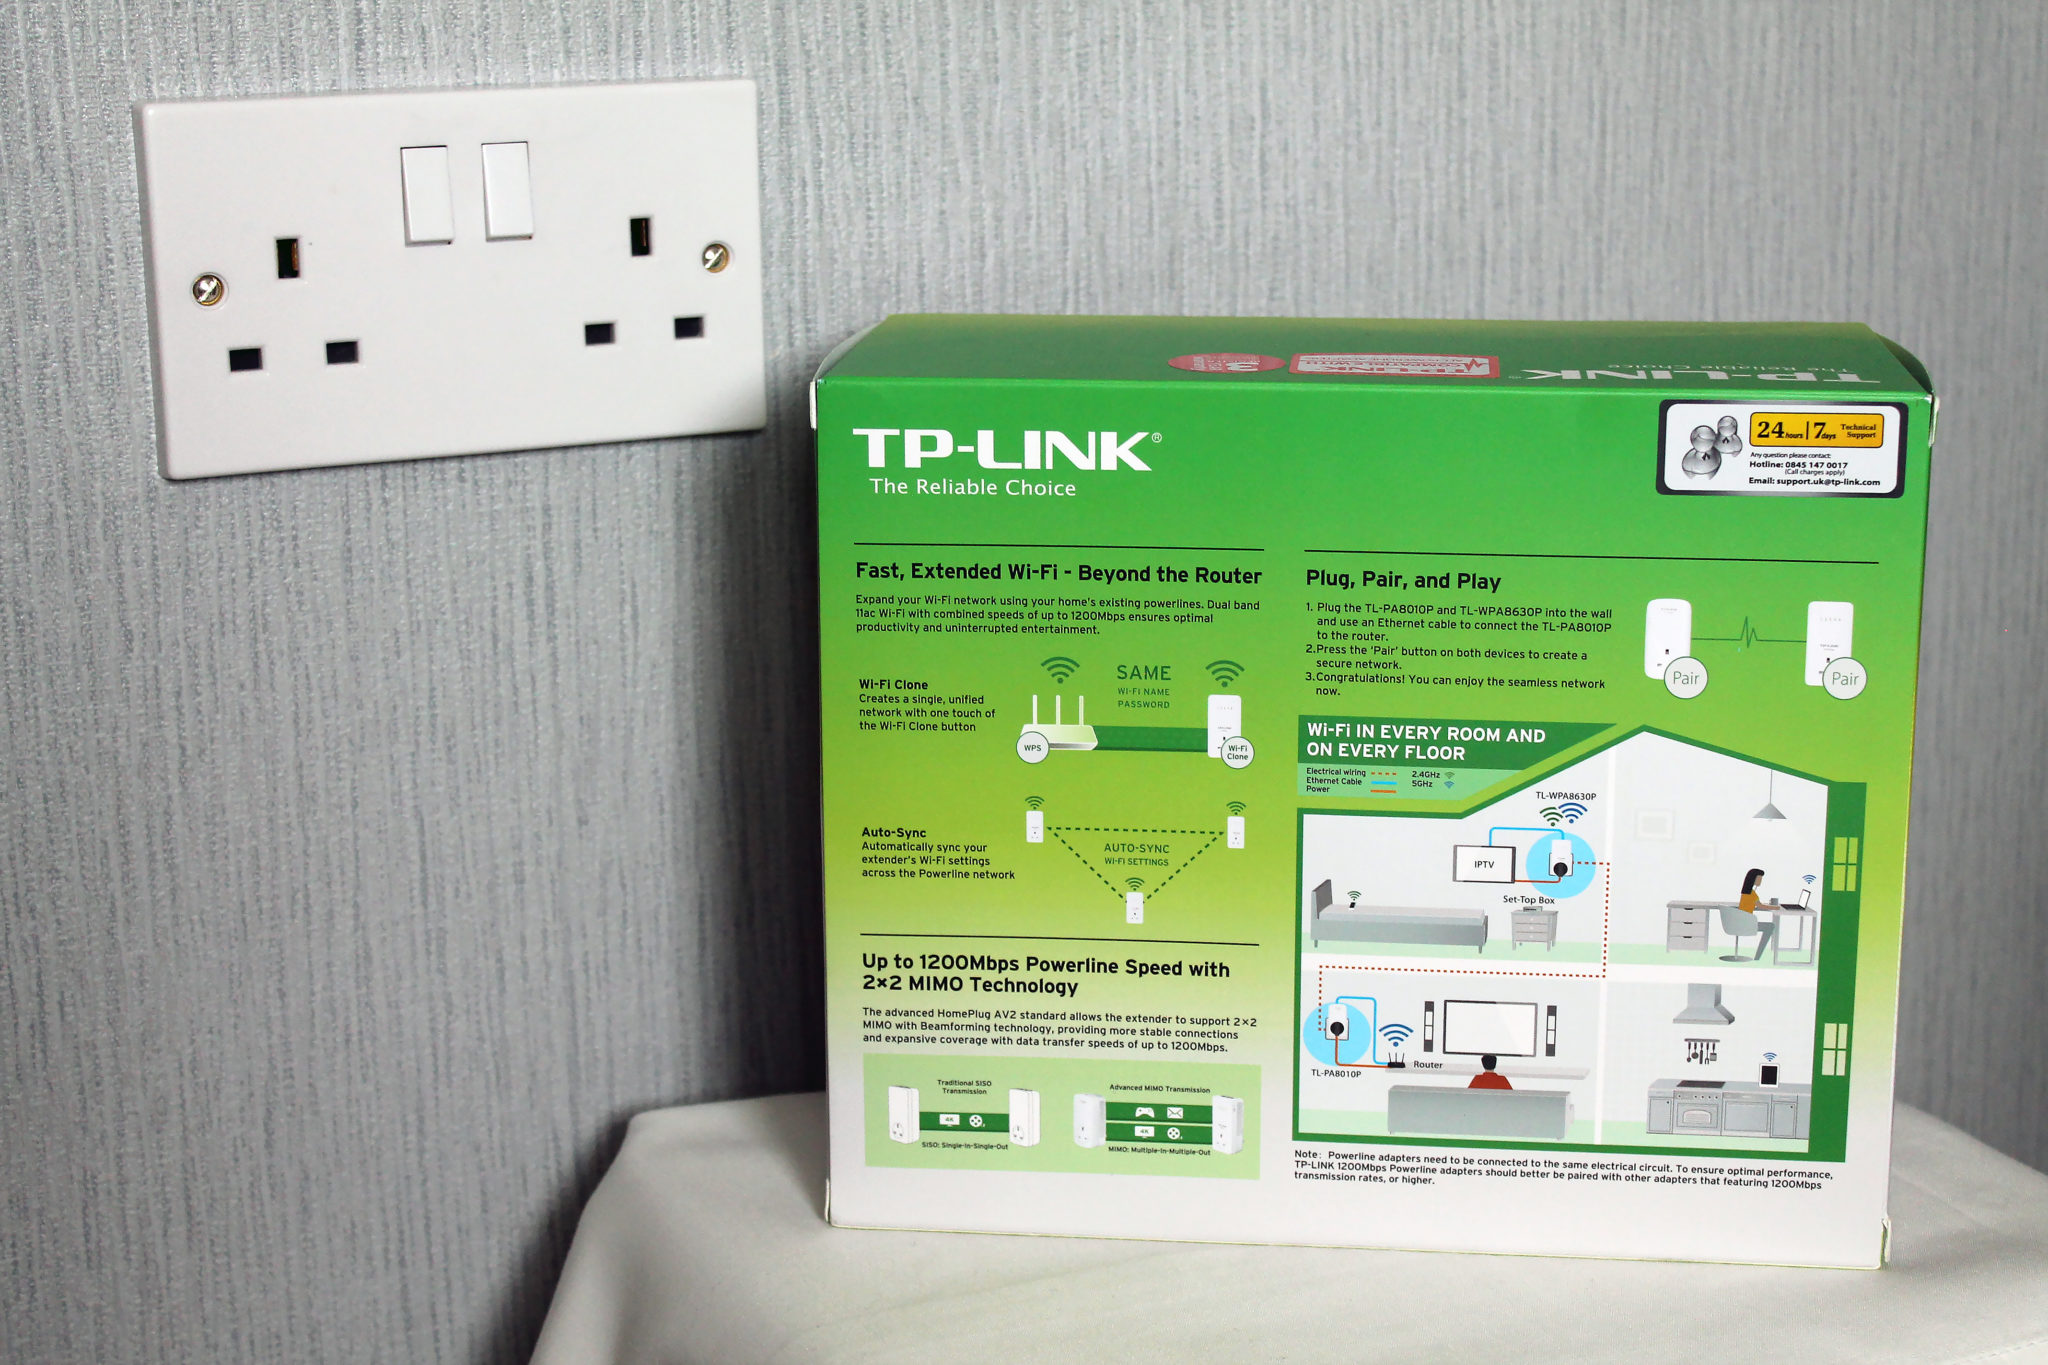 TP-LINK AV1200 Gigabit Passthrough Powerline (3 - Port) Review